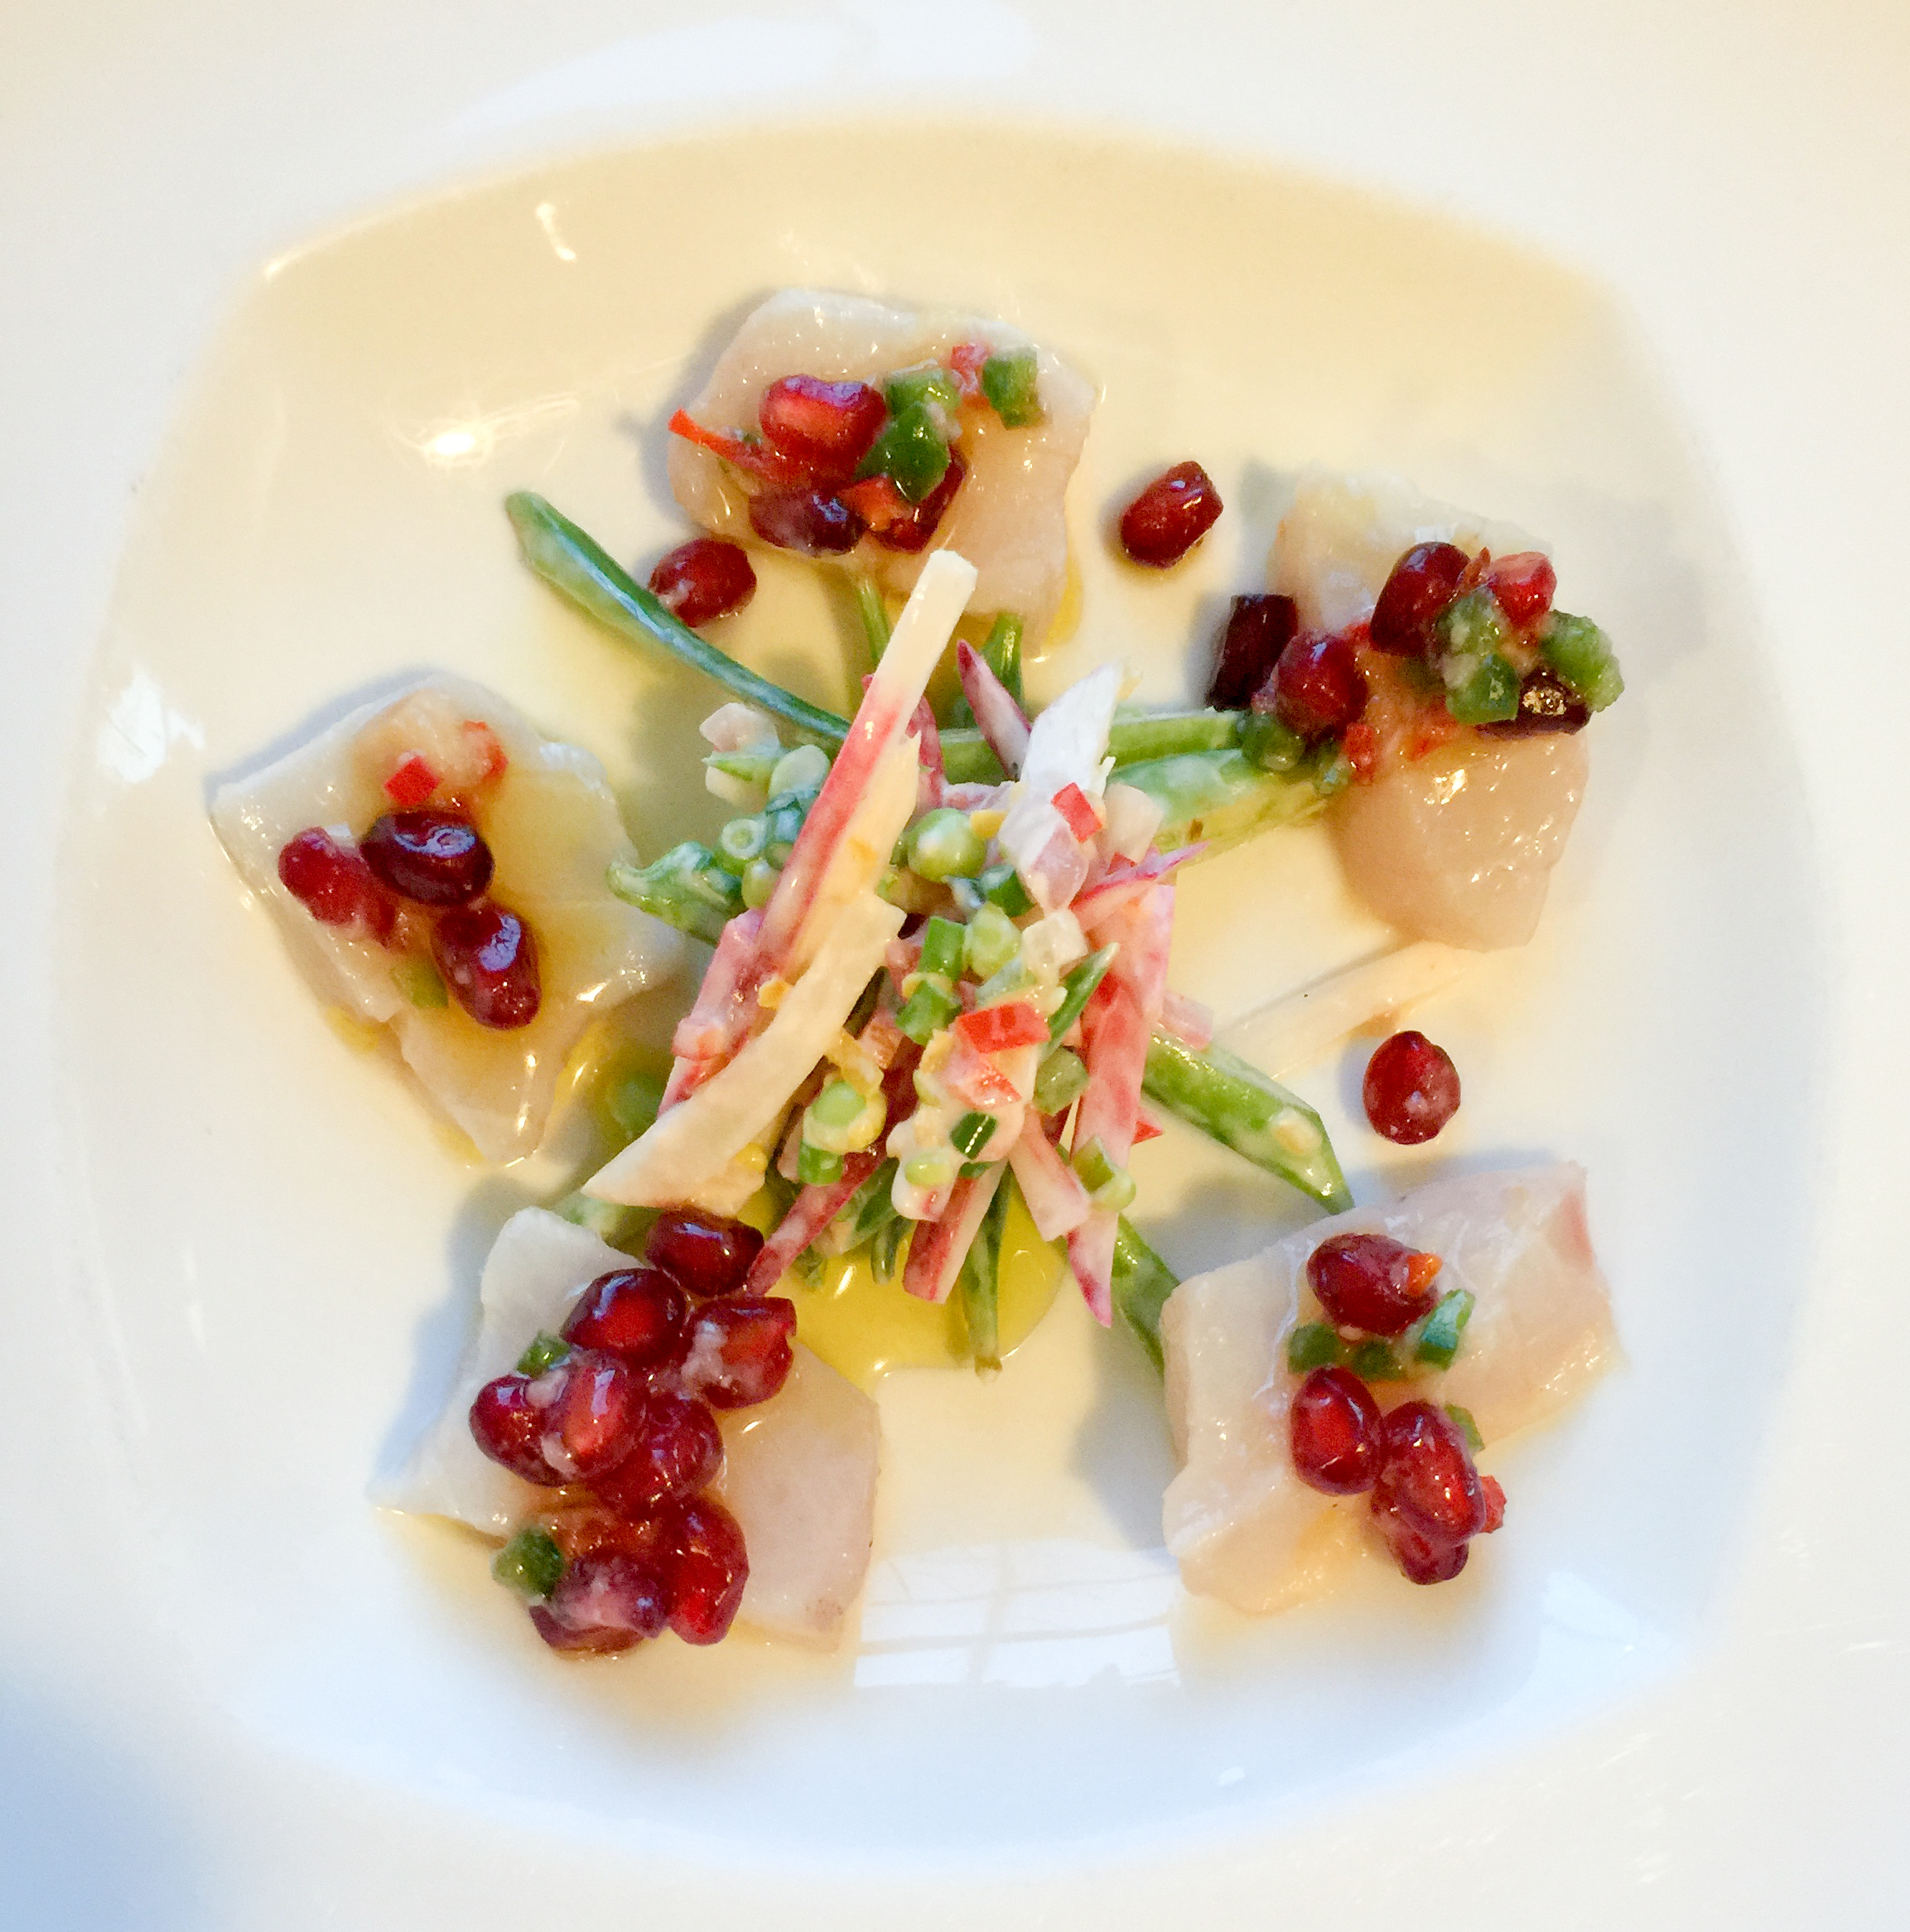 Striped bass crudo with pomegrante seeds and snap pea slaw